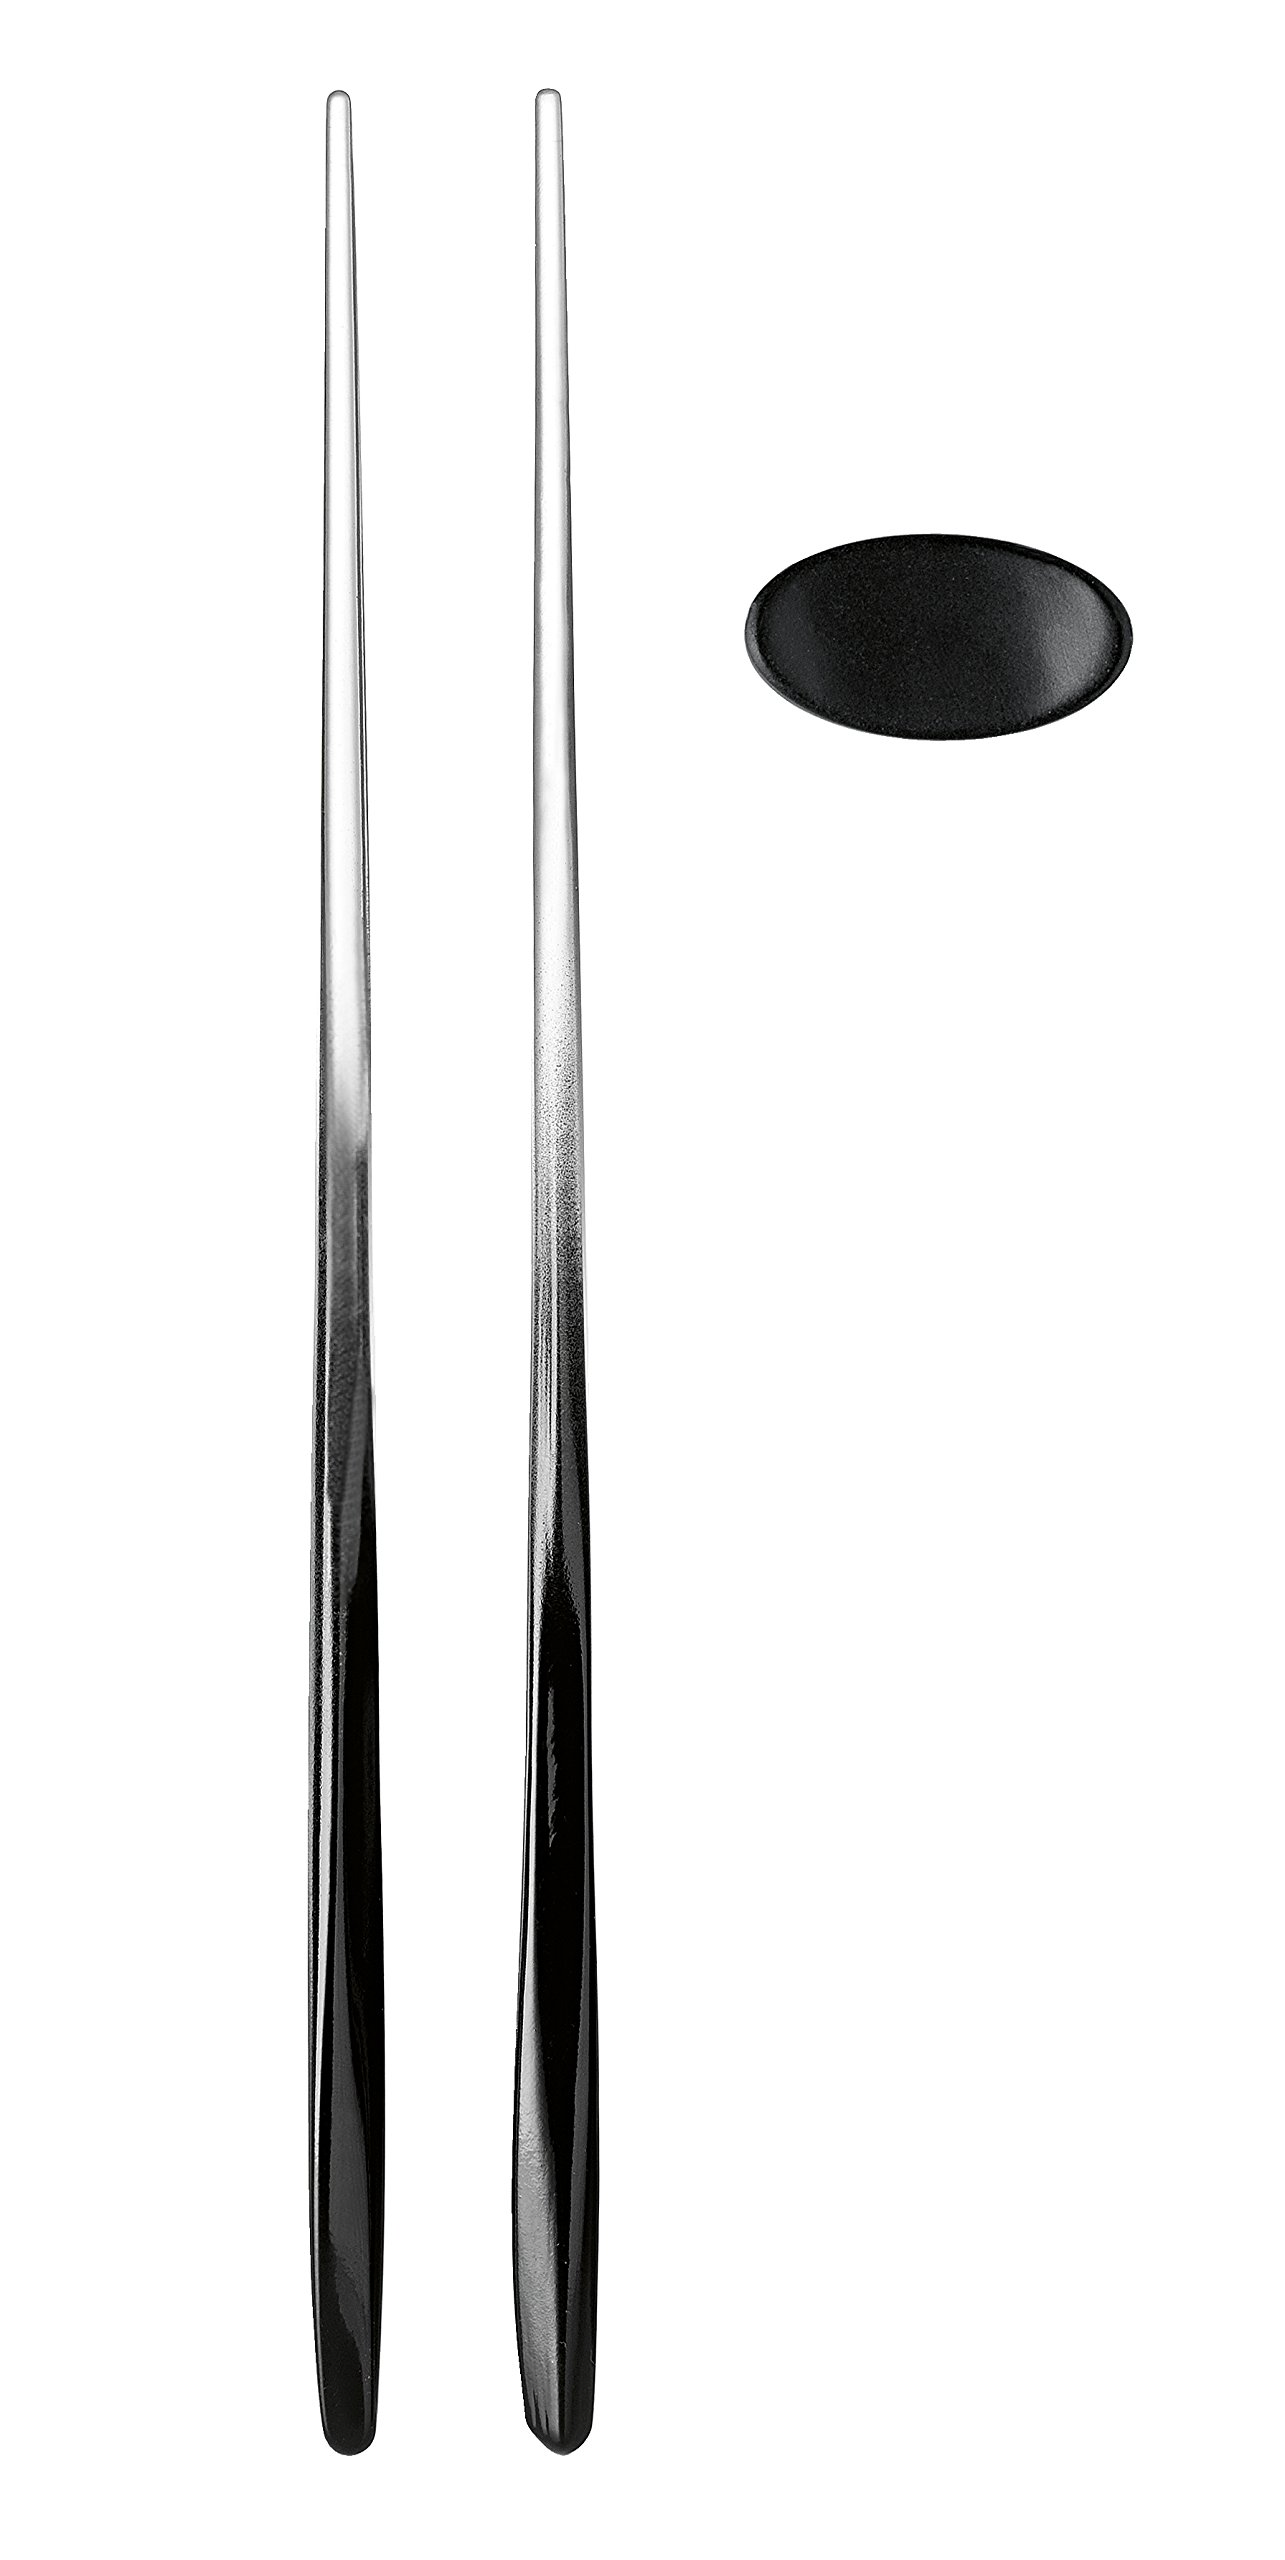 Guzzini My Fusion Collection 2 Tone Chopsticks with Rest, Black, Set of 2